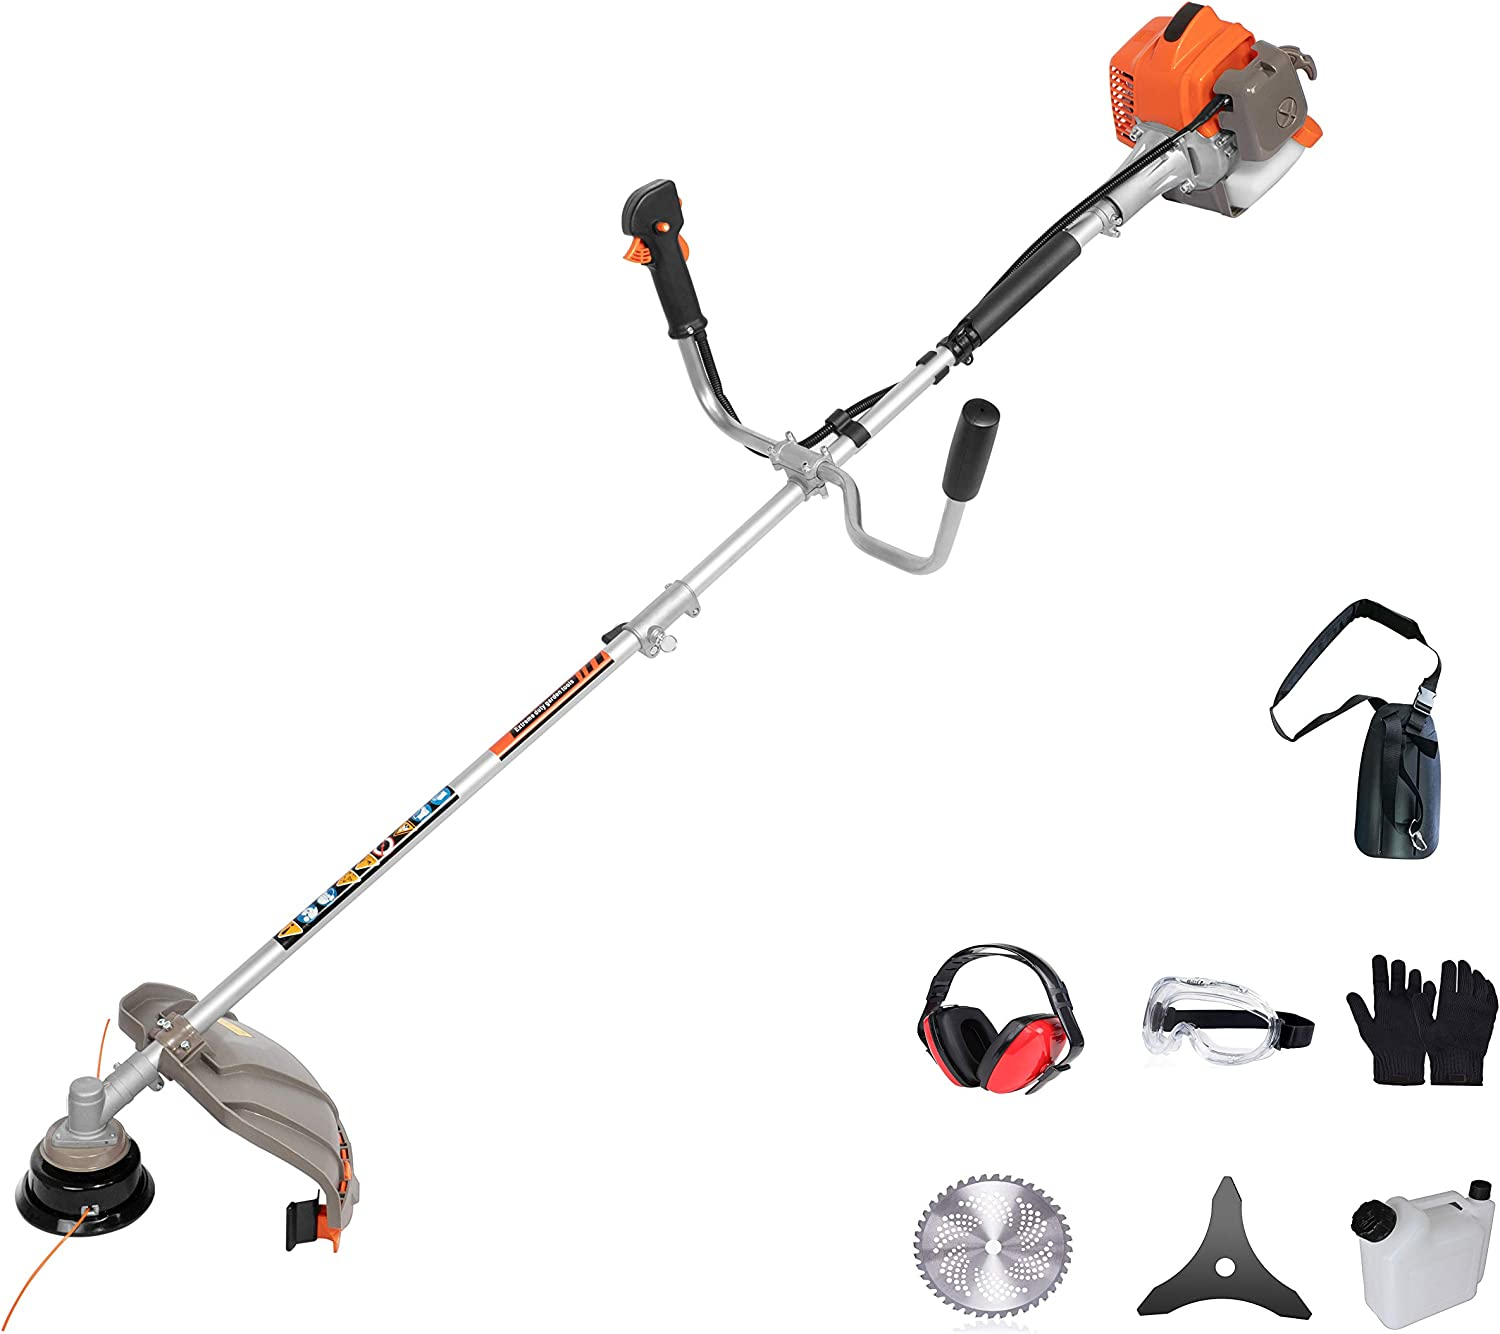 PROYAMA 26cc 2 in 1 全品送料無料 Extreme Duty Dual 2-Cycle Trimmer a 定価 Gas Line